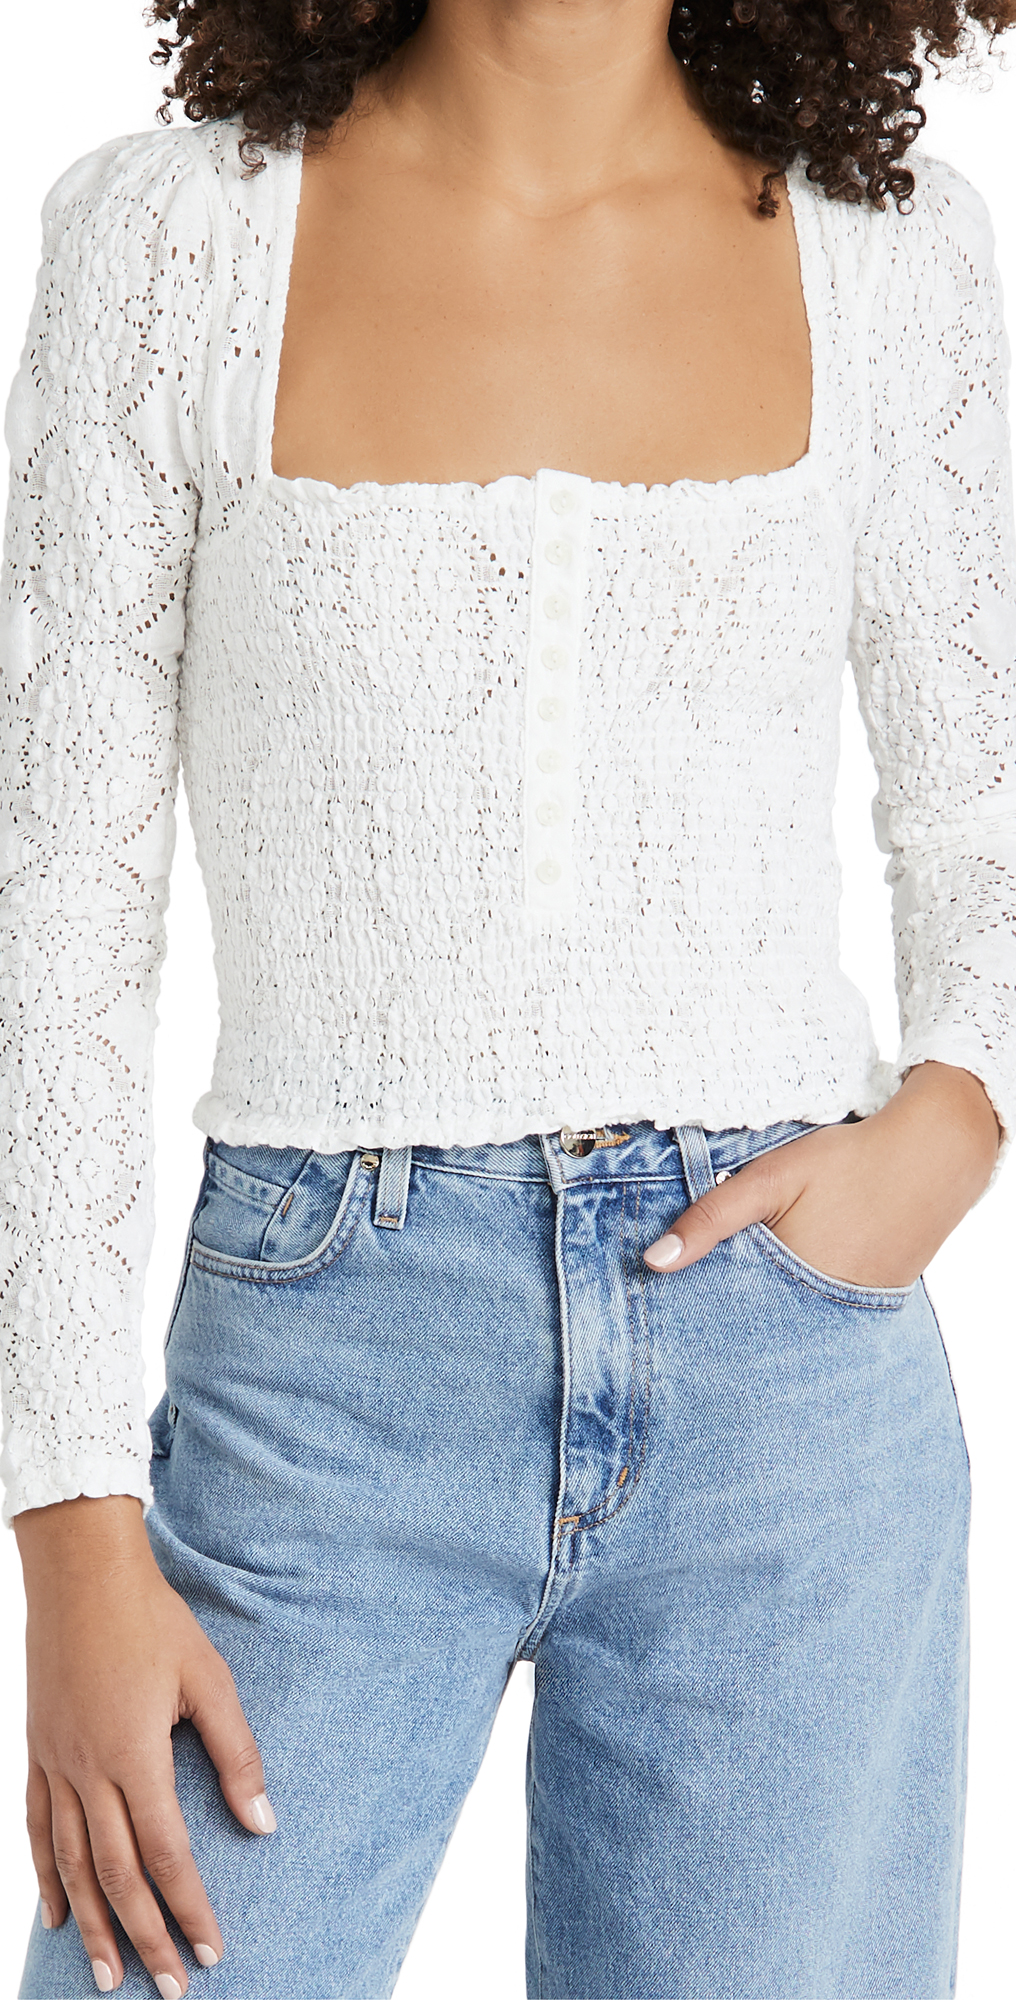 Free People Confection Top